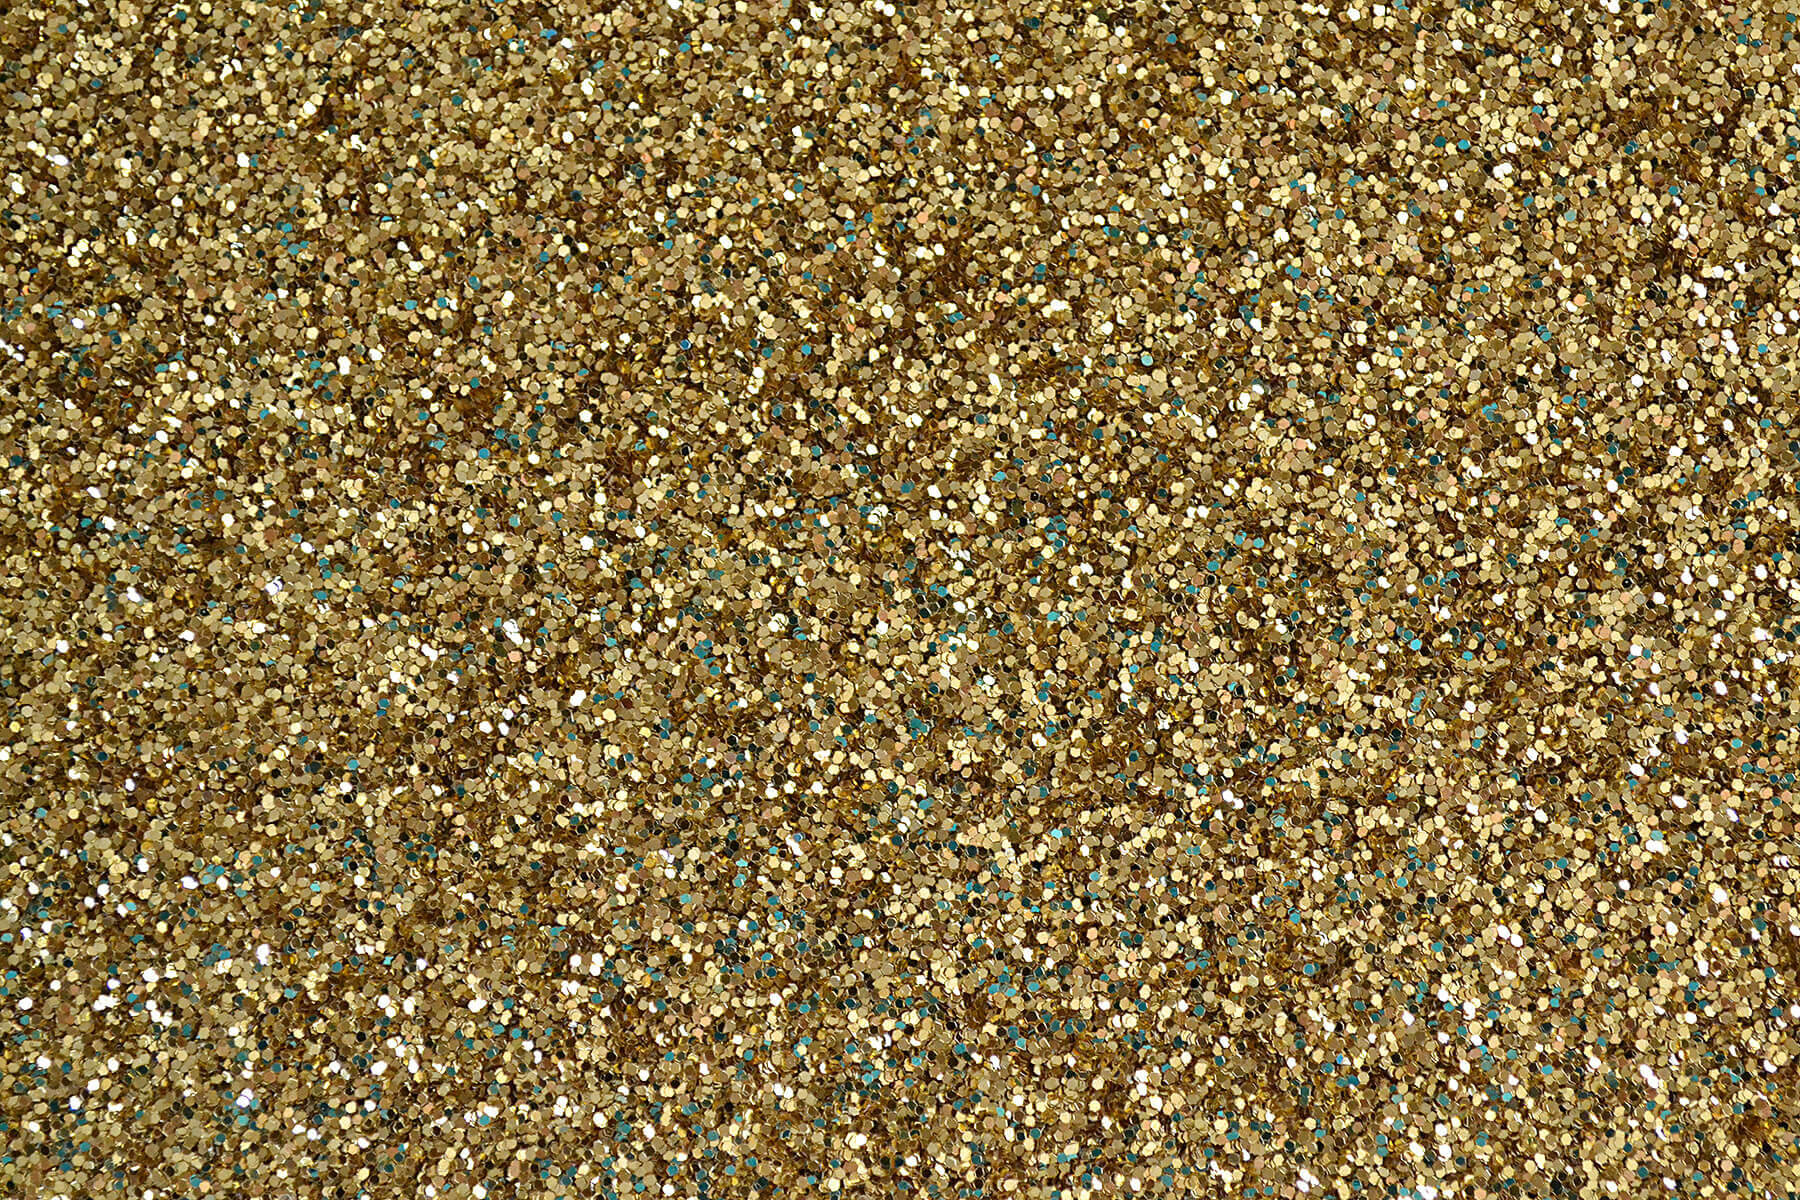 Glittery Freebies for Your Desktop Smart Phone or Crafts 1800x1200